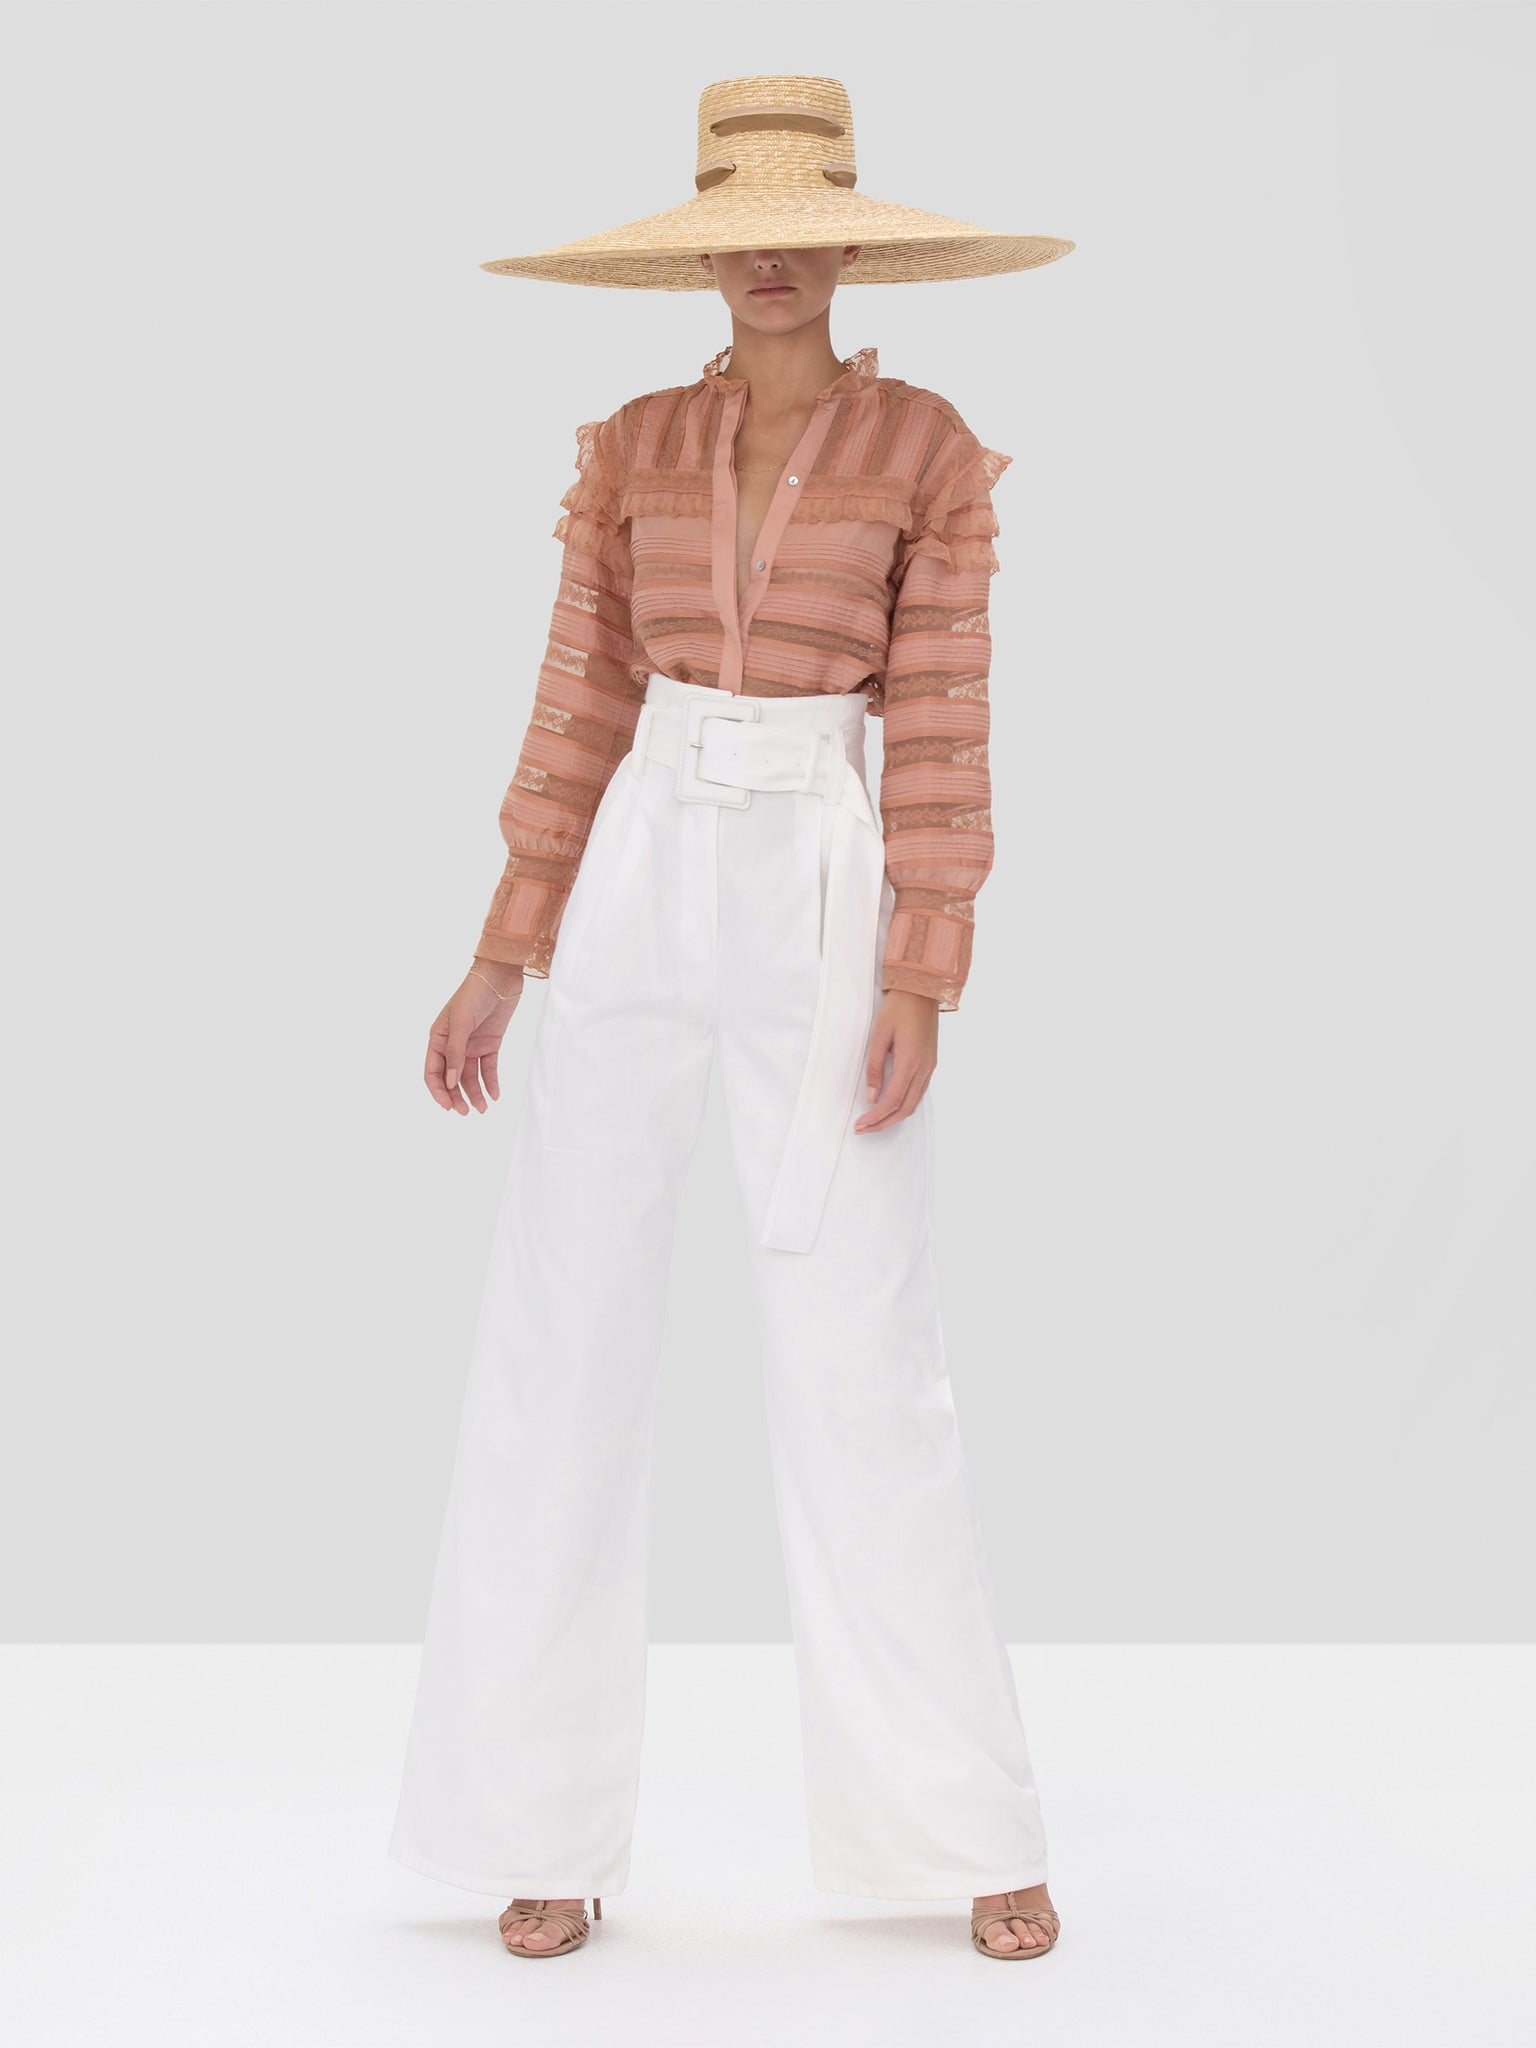 Alexis Karsyn Top in Coral and Kanneth Pant in White from Spring Summer 2020 Collection